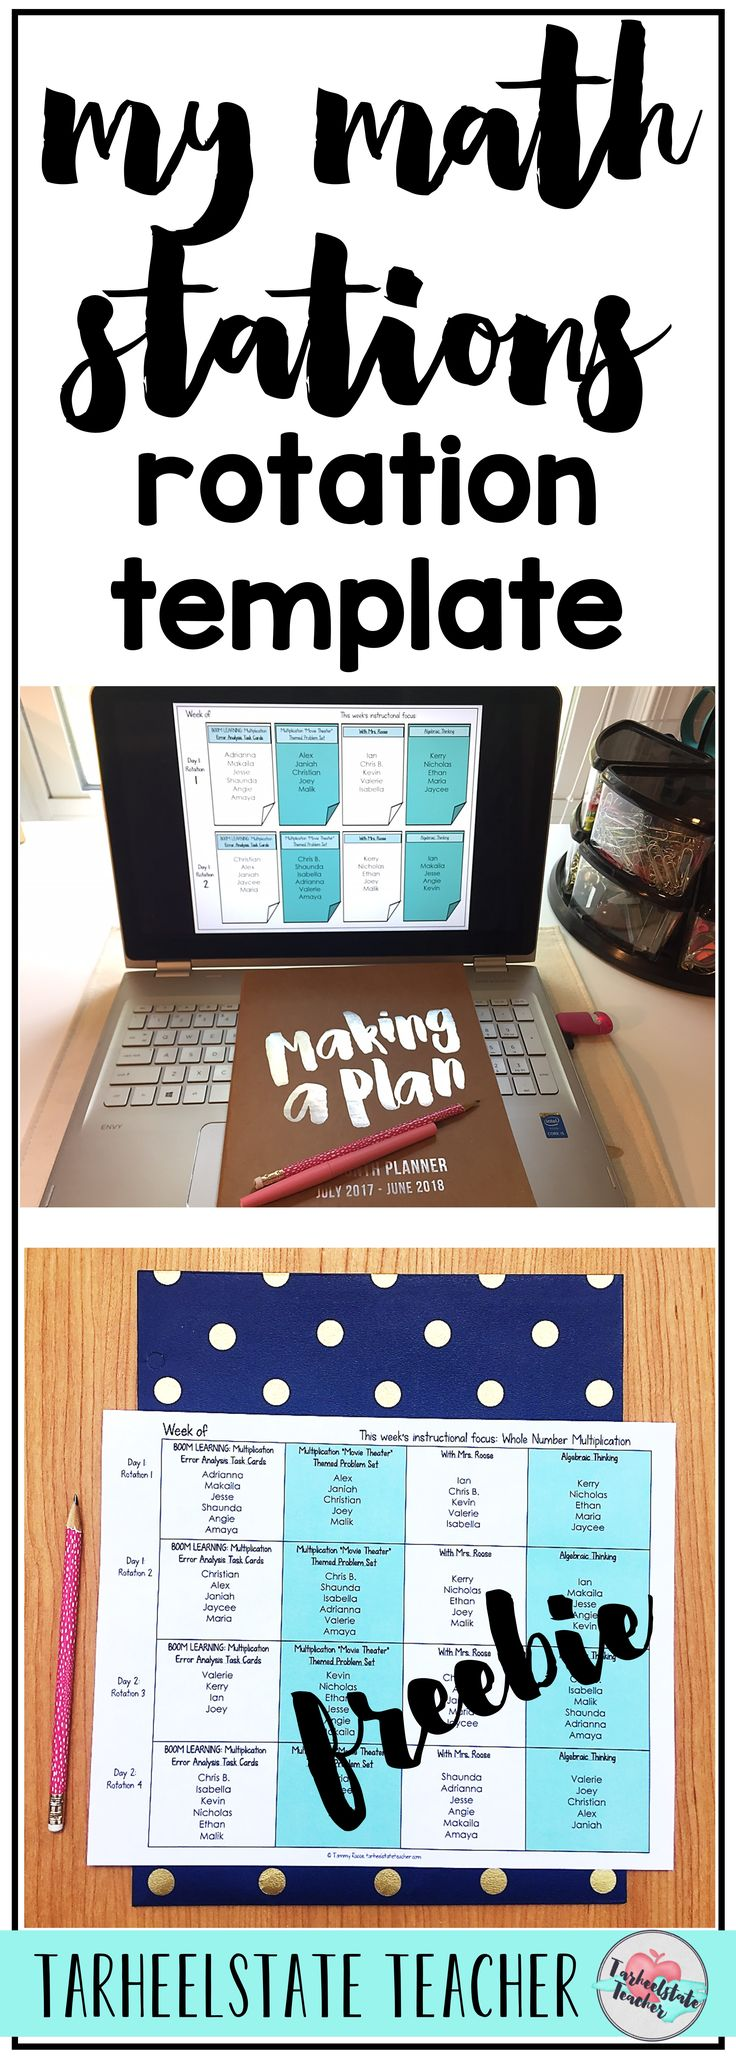 Math Stations Rotation Template   Math Stations Schedule Board   I'm sharing how I schedule my math stations rotations. Grab your free editable math rotations station template for upper elementary math stations. Learn how my math stations are differentiated within the schedule of assignments. Find out how I manage my stations without using a bulletin board